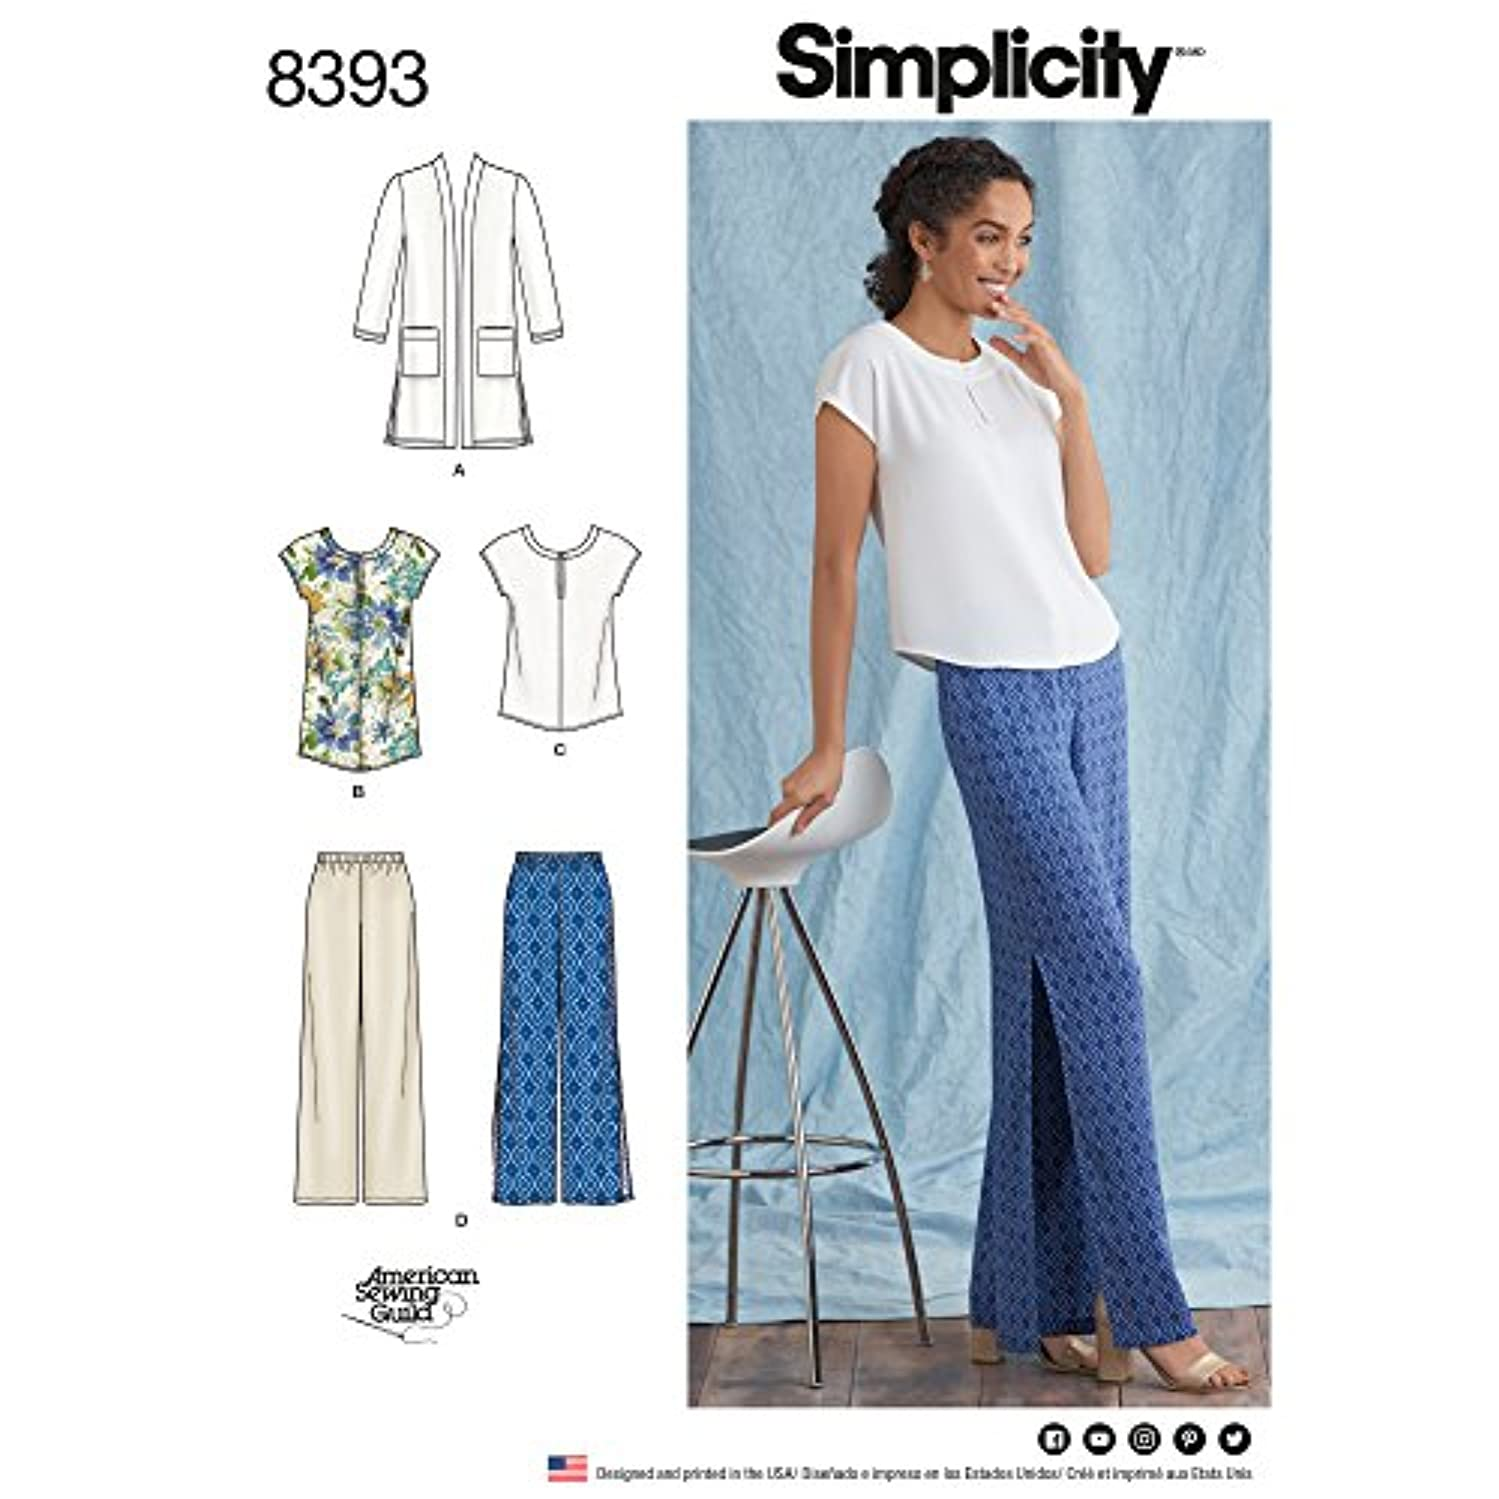 Simplicity Creative Patterns US8393AA Misses' & Plus Size Pants, Tunic or Top & Knit Cardigan Pattern, AA (10-12-14-16-18)